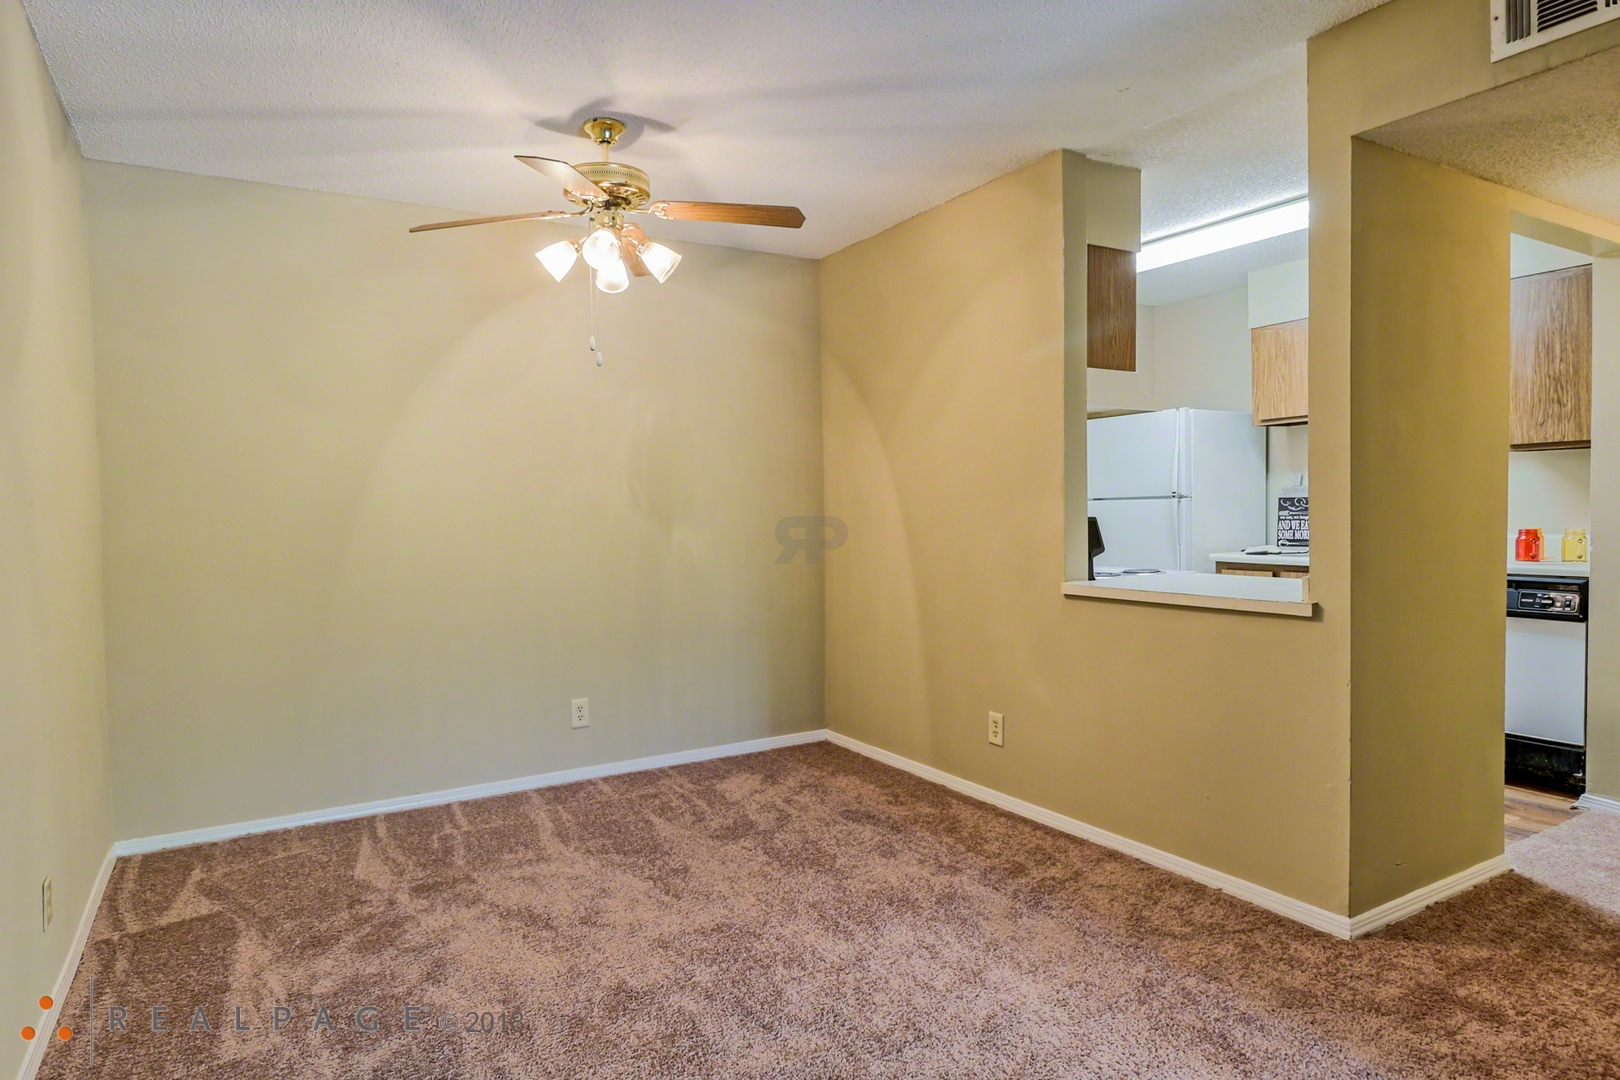 Apartments for Rent in Mobile, AL | Greentree Apartments - Home